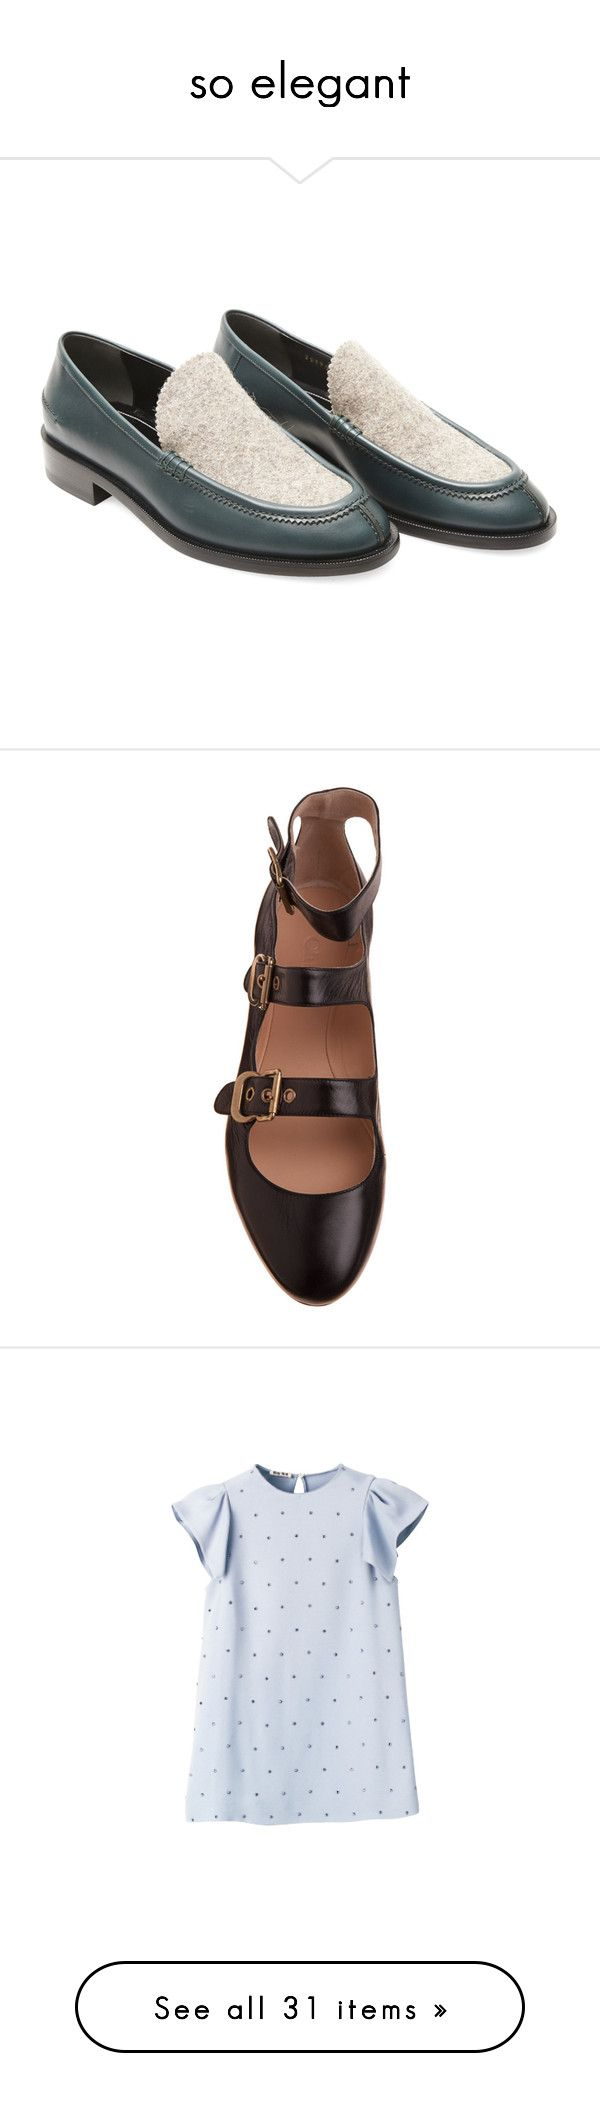 """""""so elegant"""" by xtrvgnx ❤ liked on Polyvore featuring shoes, loafers, chaussures, balenciaga shoes, balenciaga, loafer shoes, loafers & moccasins, wool shoes, flats and sale"""